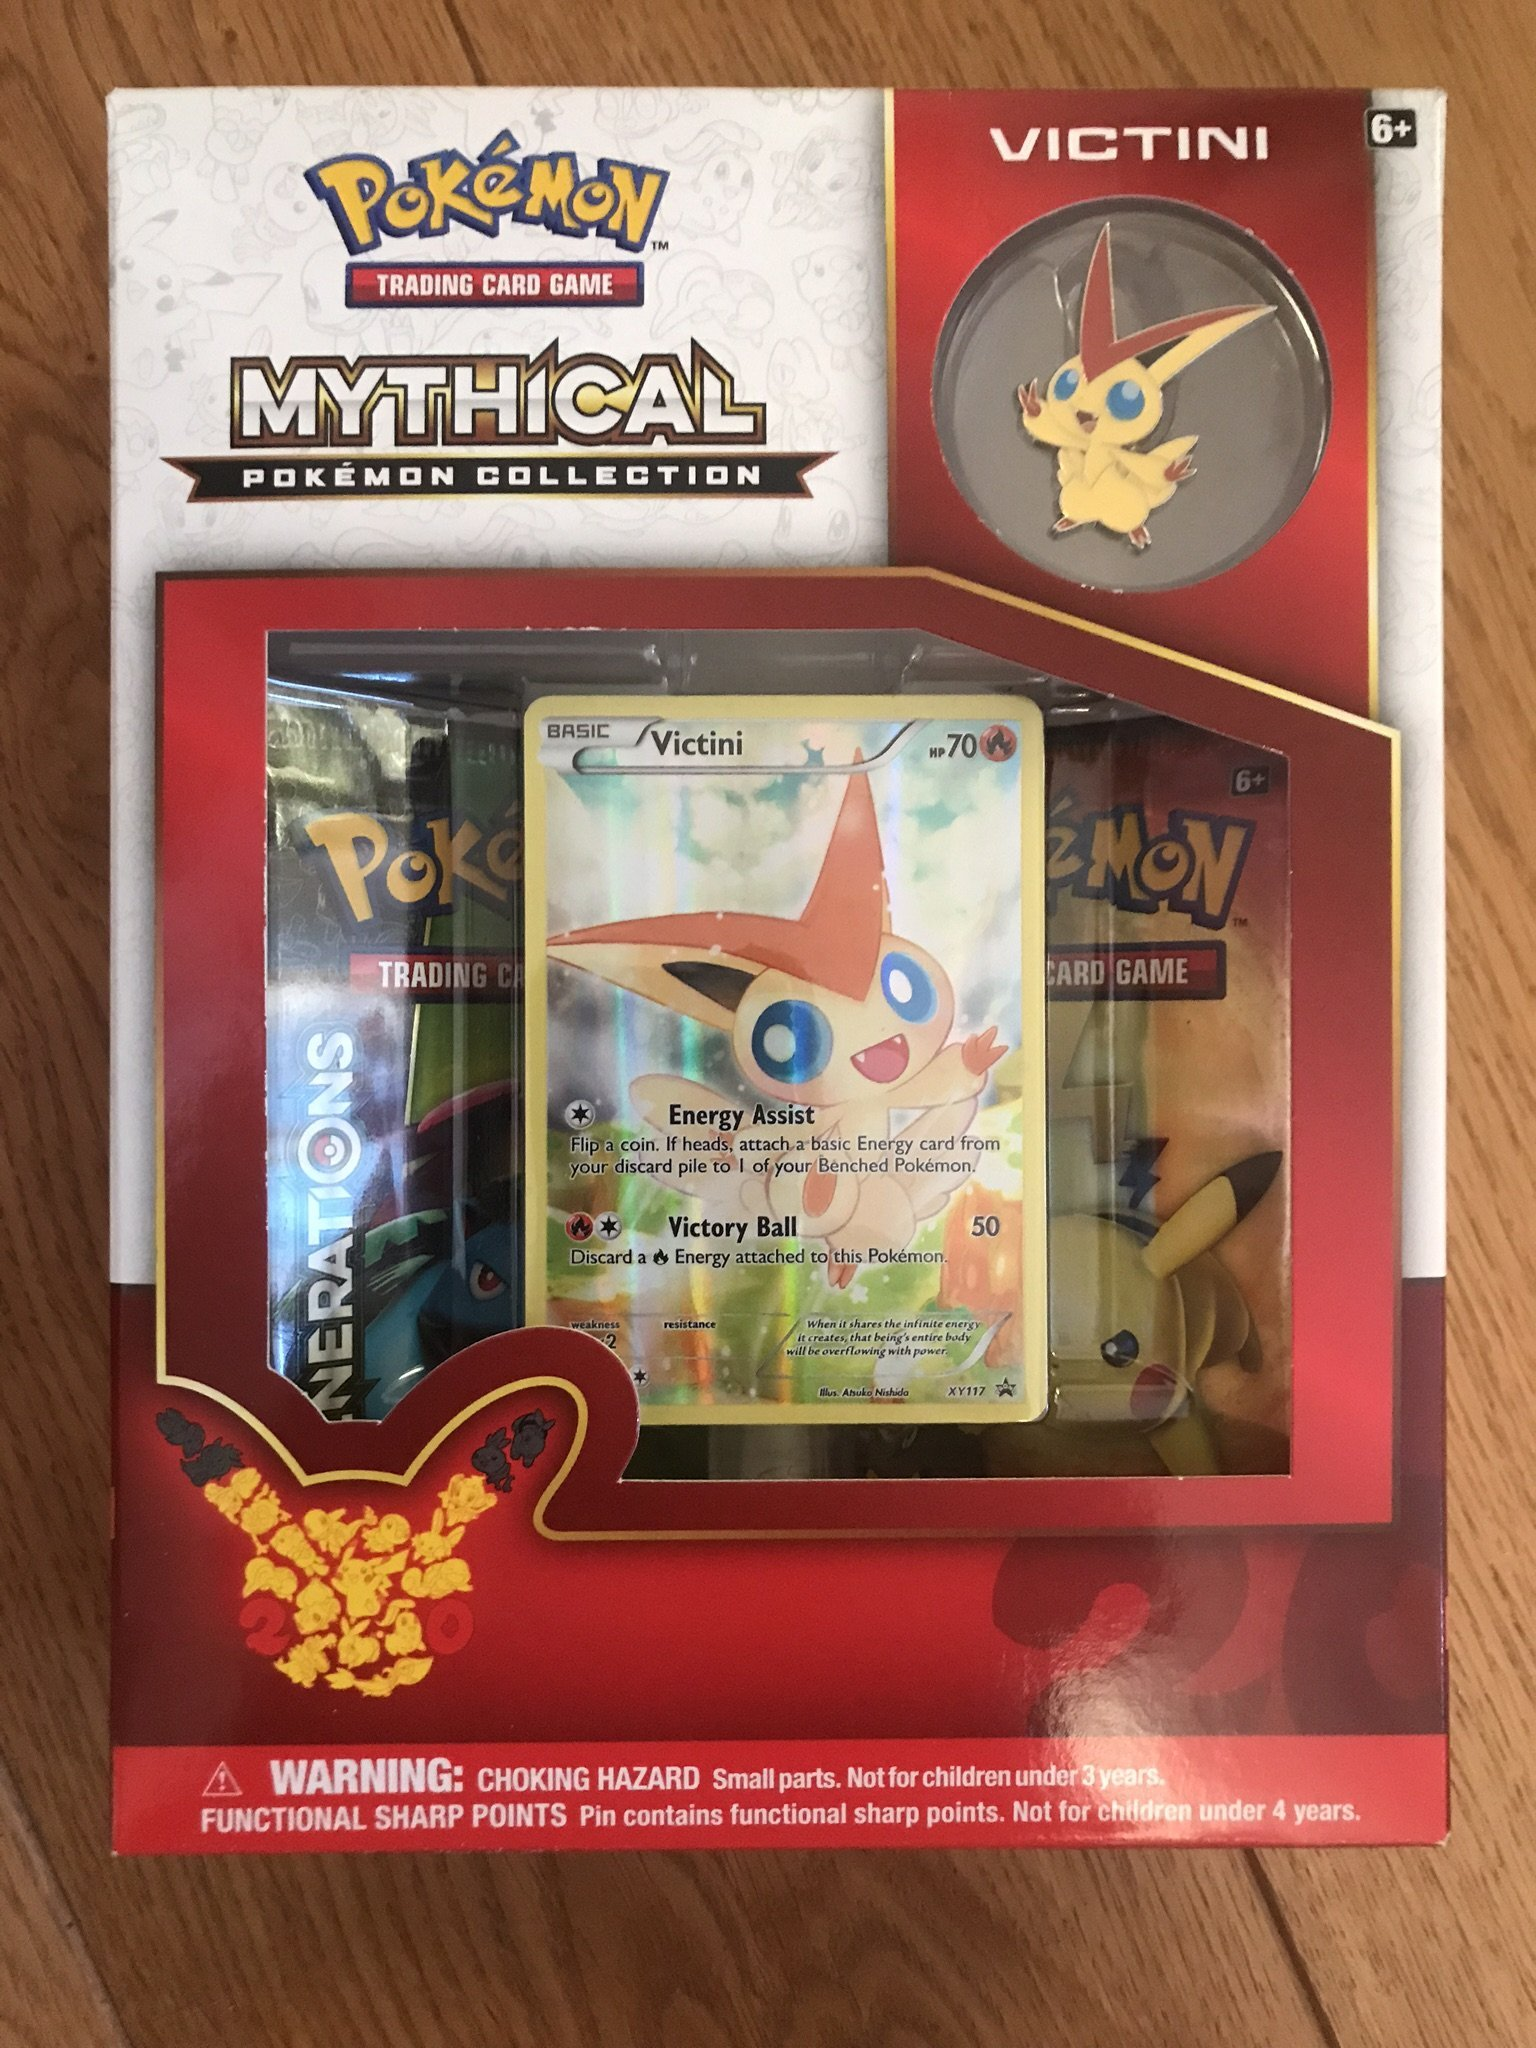 Pokémon - Mythical Pokemon Collection VICTINI  - Trading Card Game